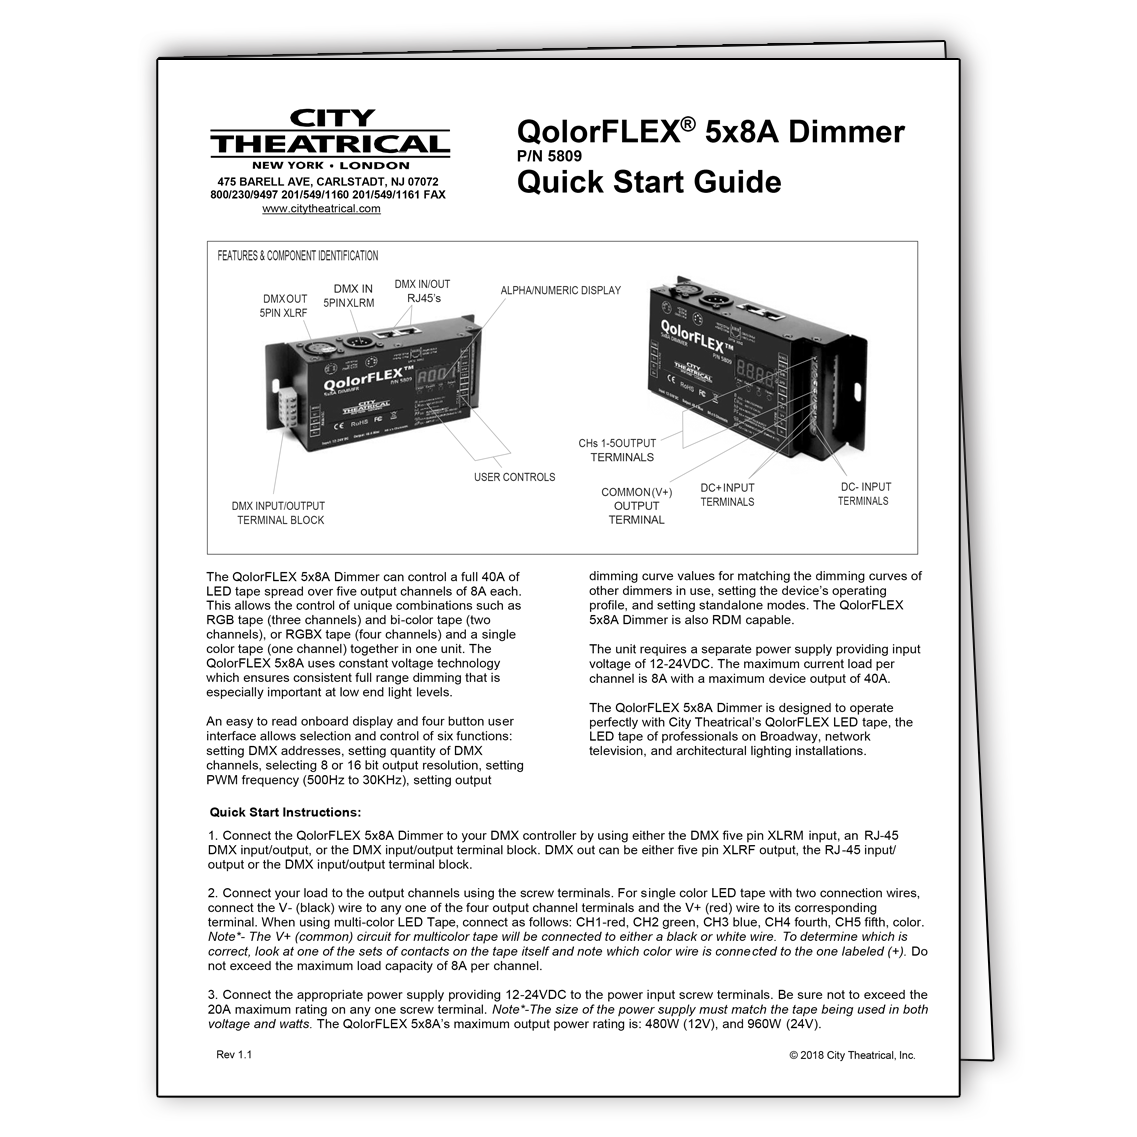 QolorFLEX 5x8A Dimmer Quick Start Guide